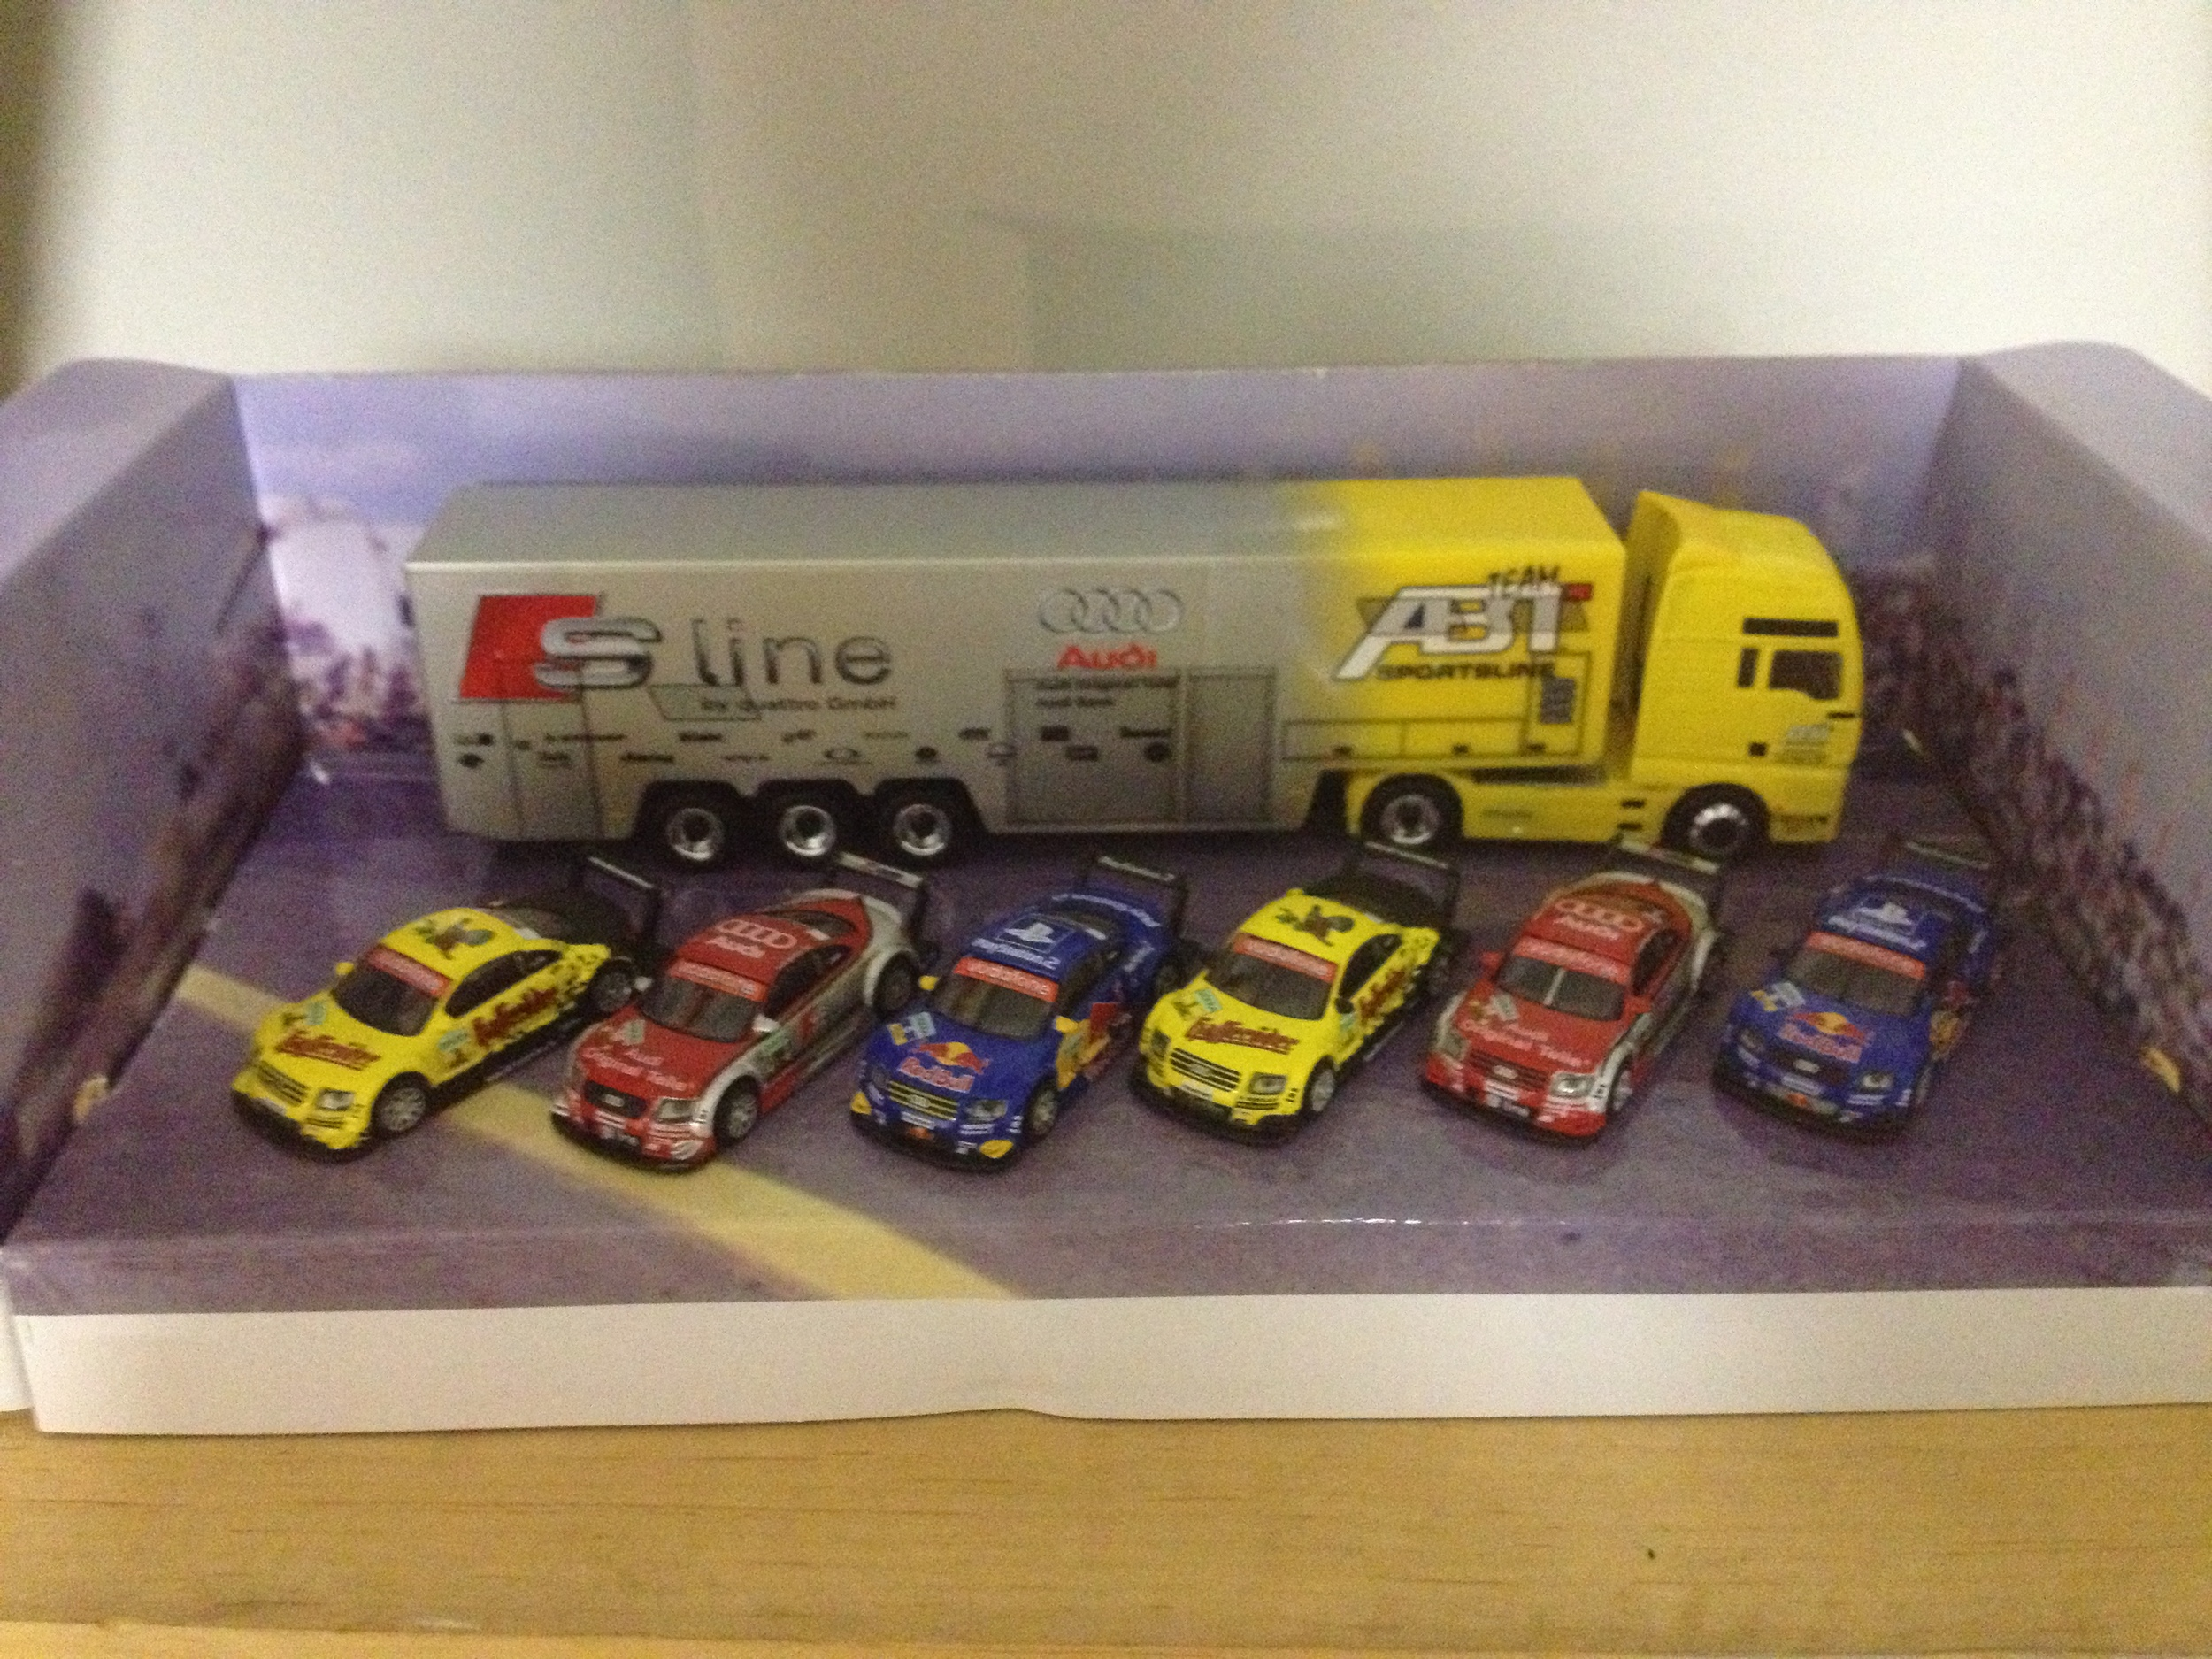 Abt racing toy collection